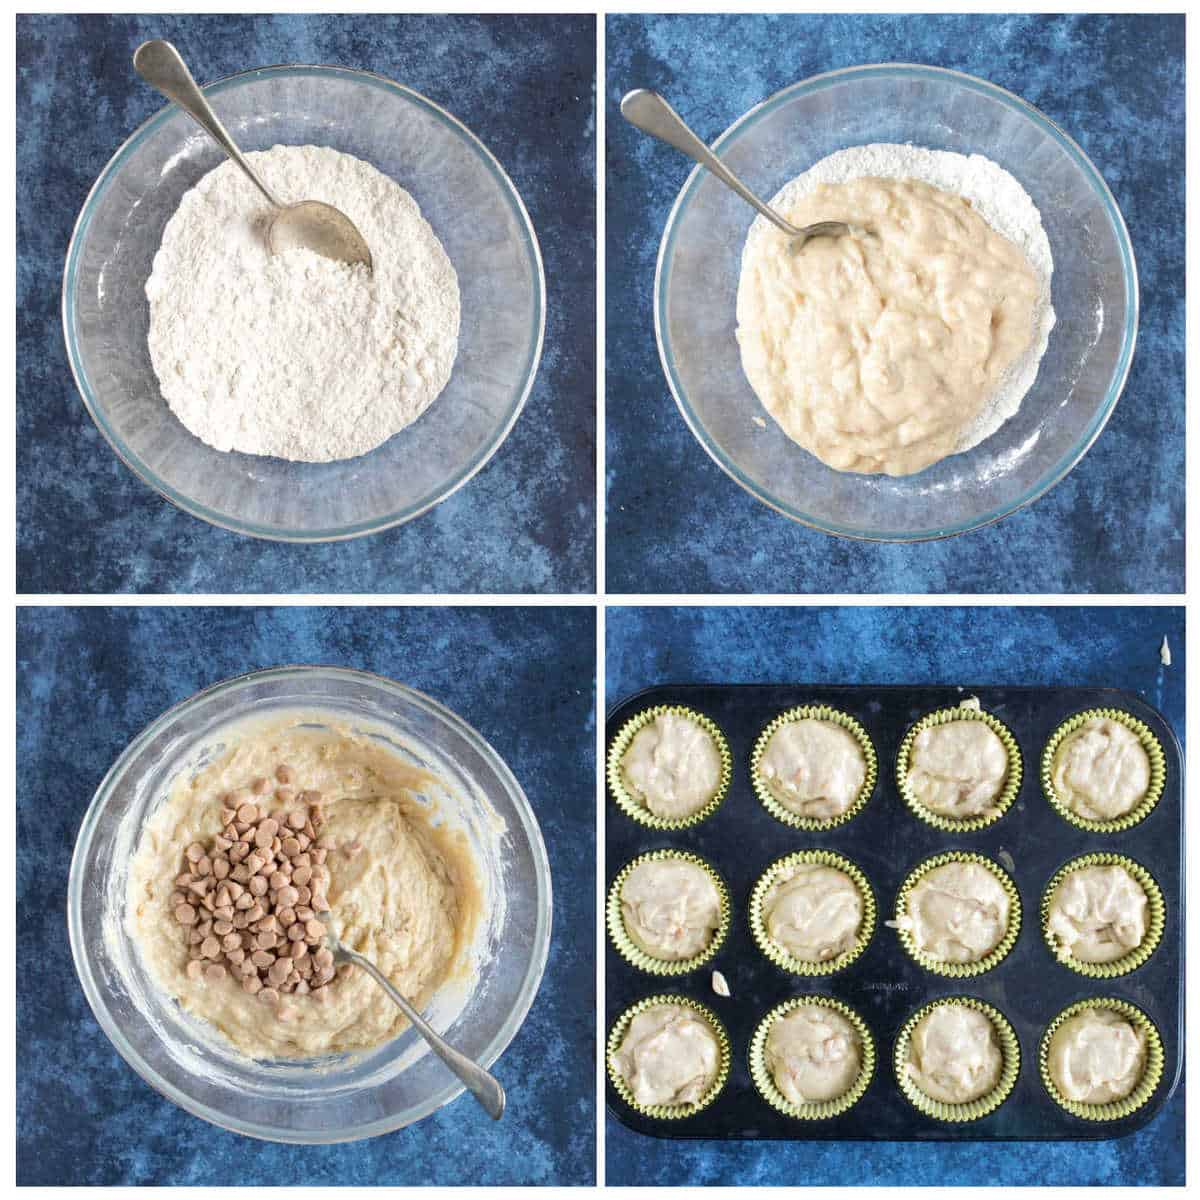 Step by step photo instructions for making the peanut butter and banana muffins.